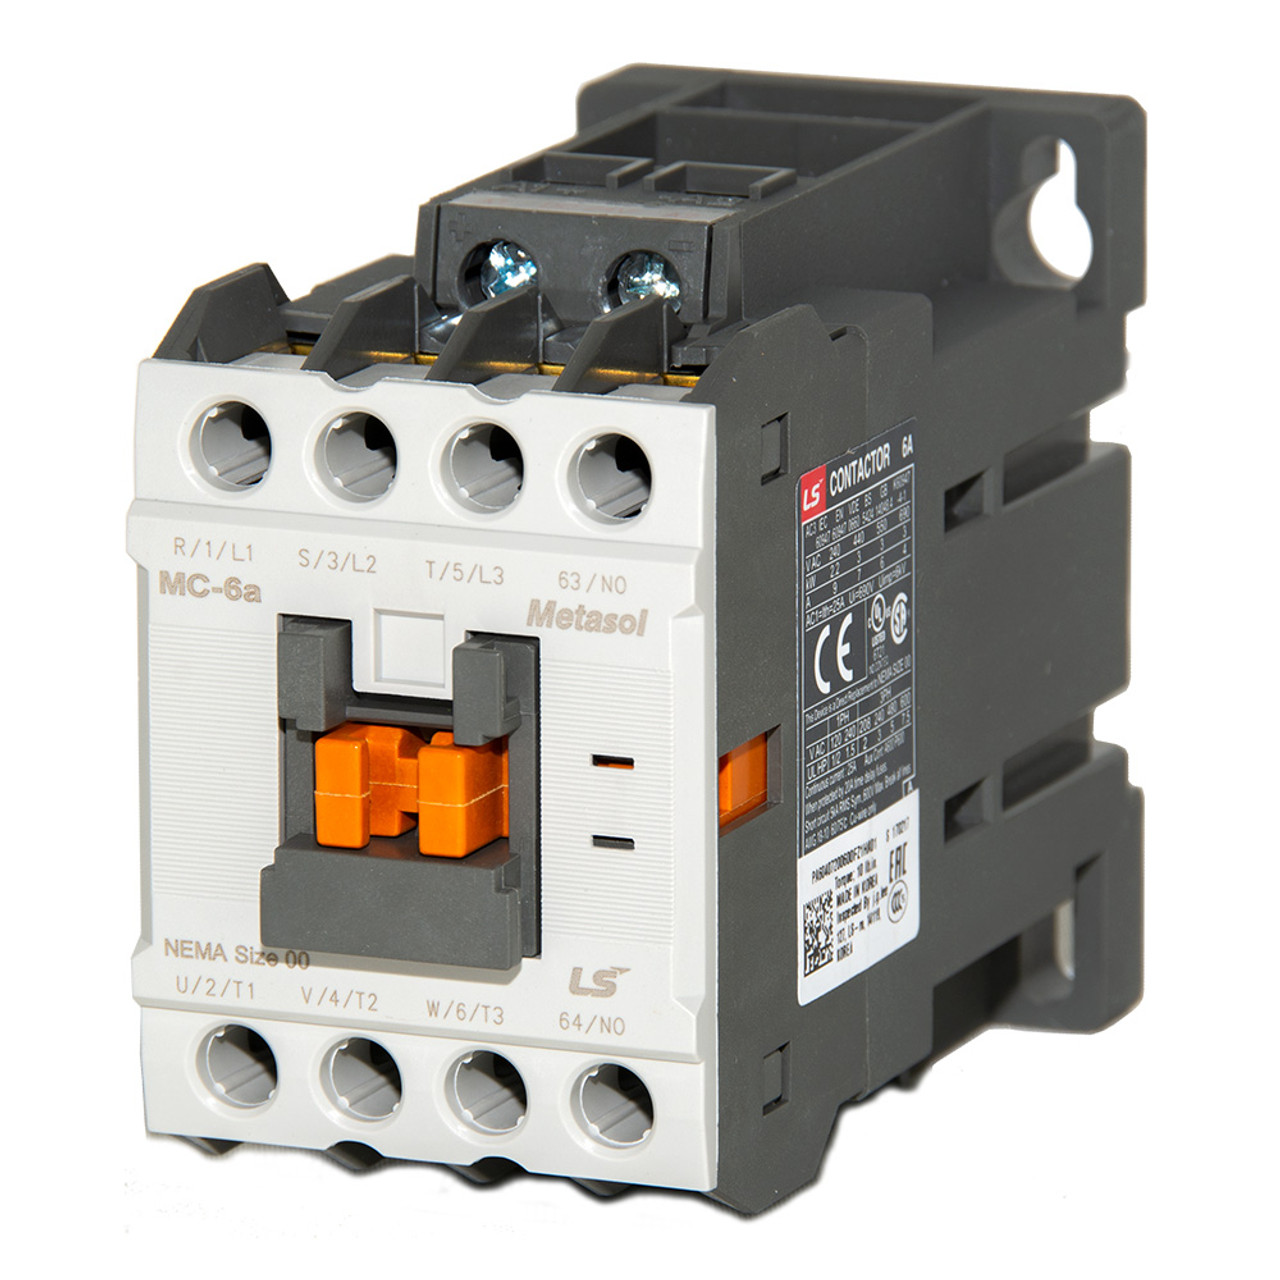 hight resolution of lsis mc 6a metasol series magnetic contactor dc12v screw 1a